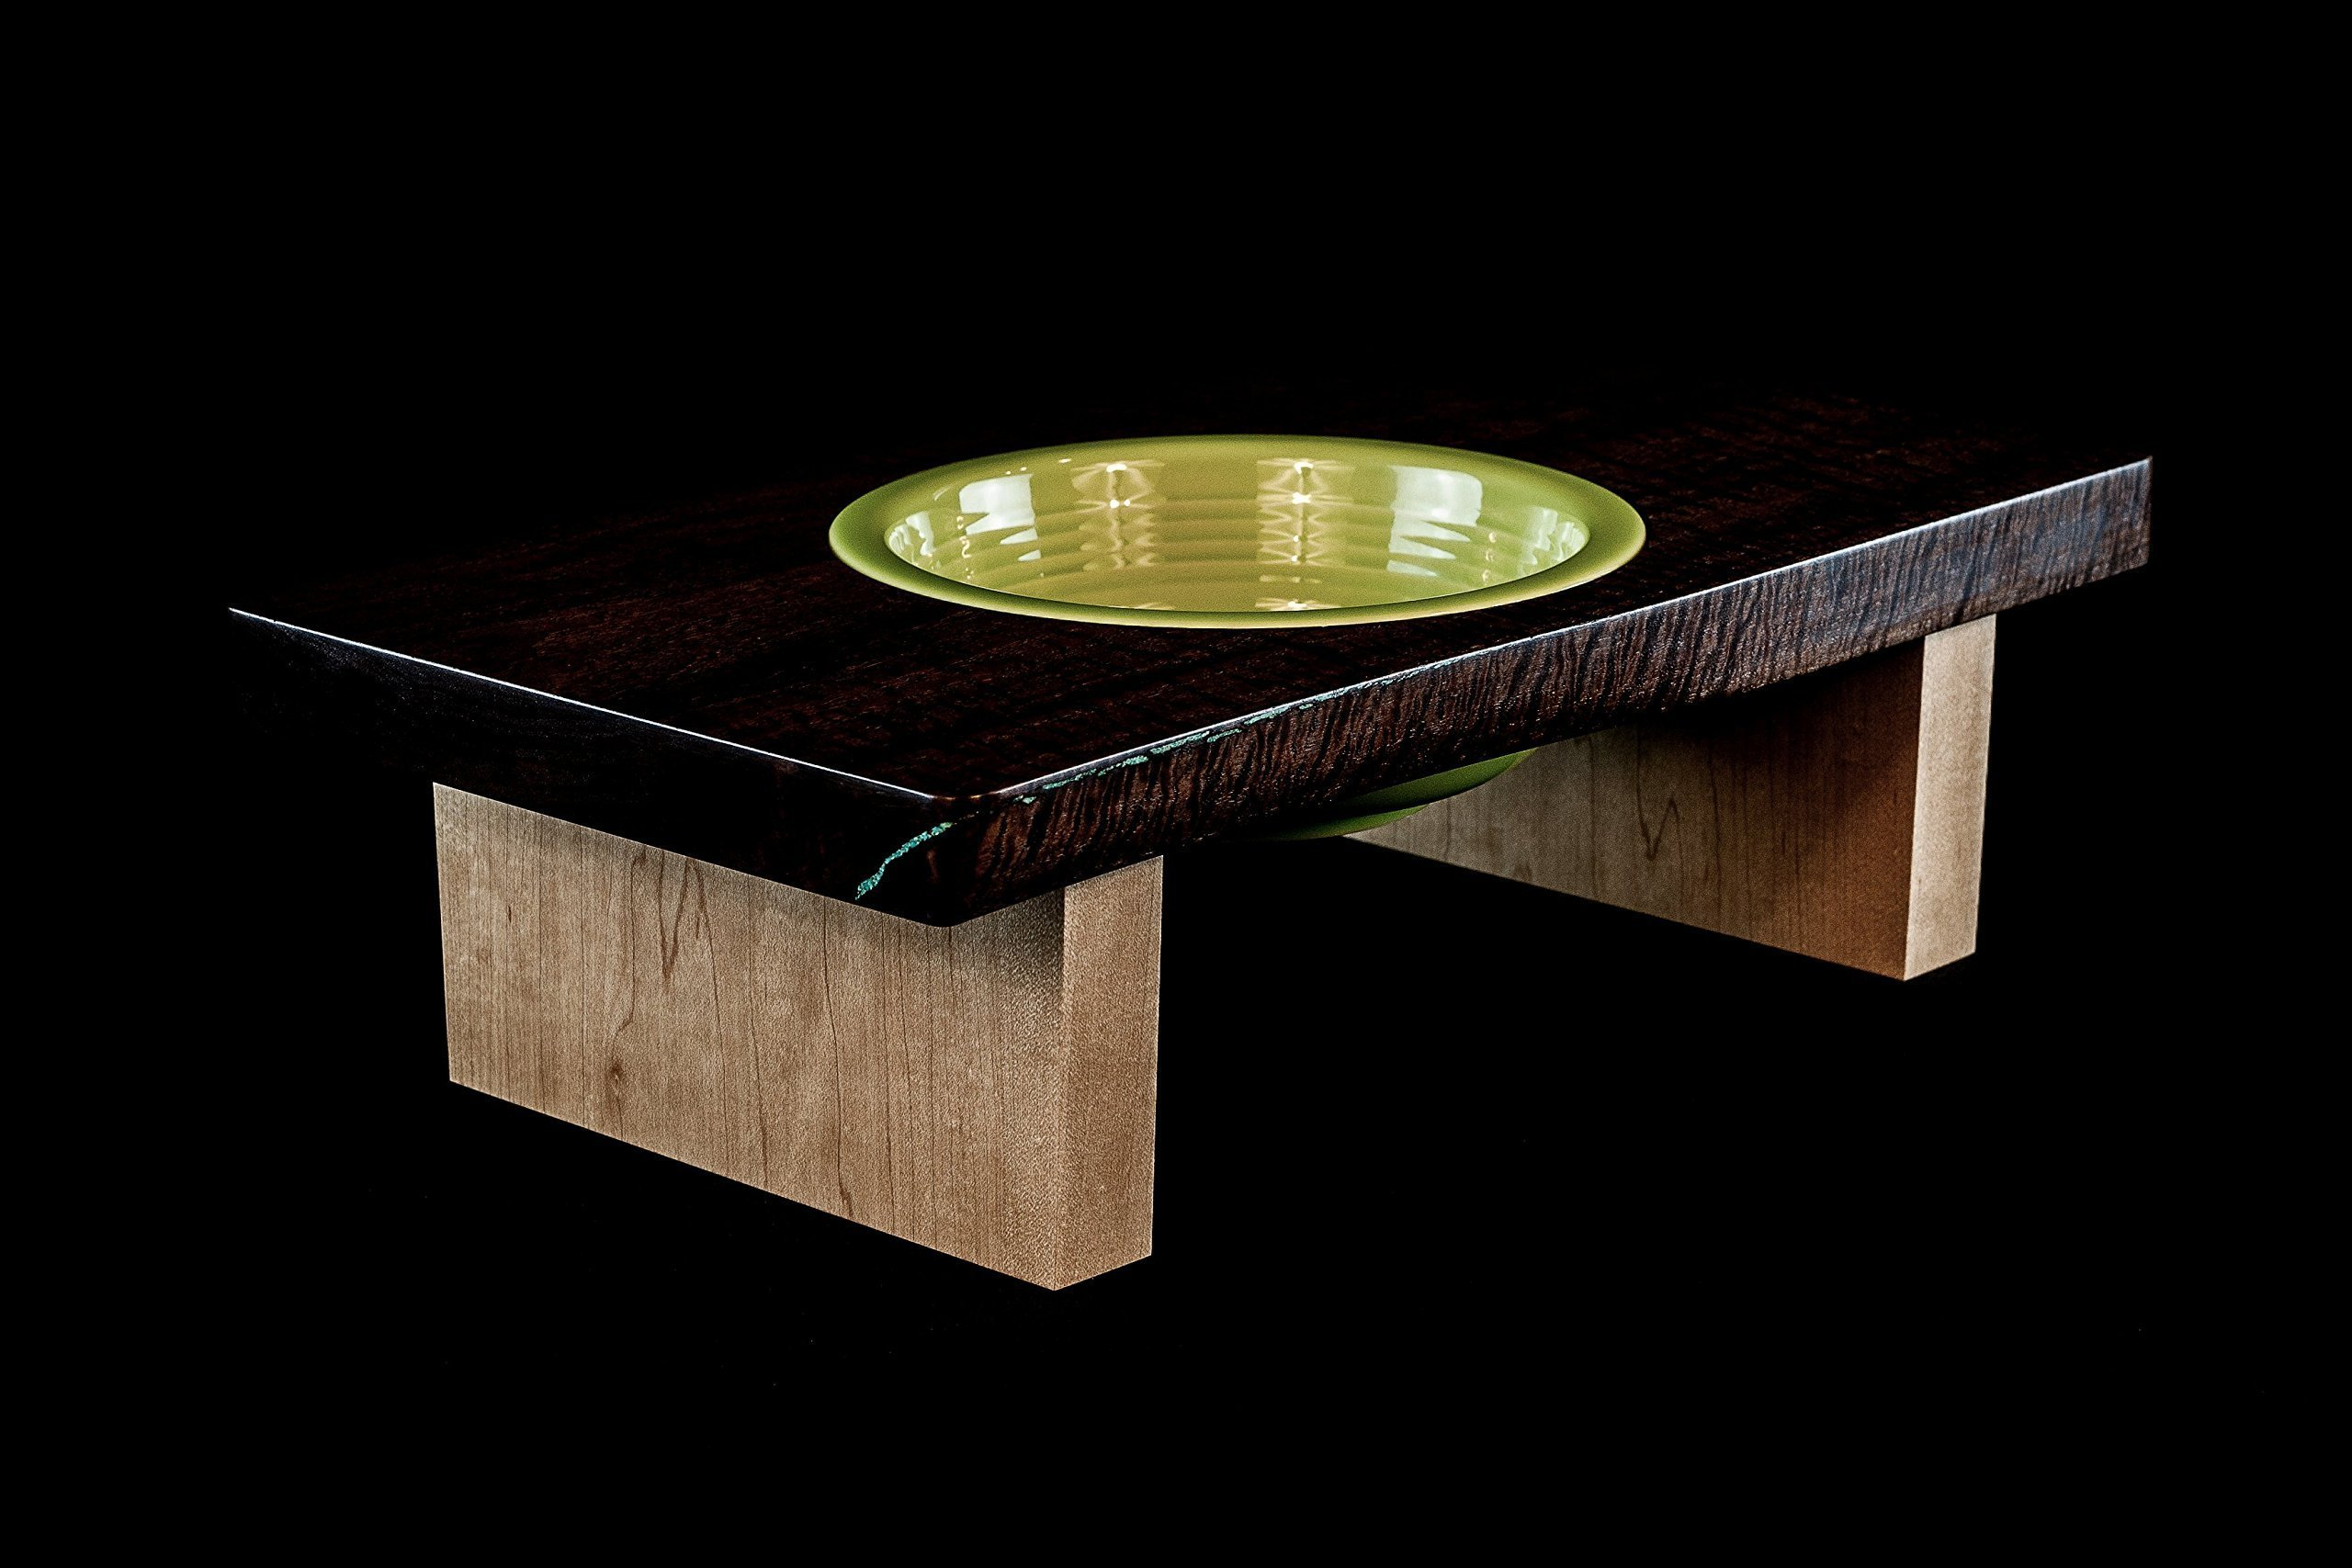 Live Edge Curly Black Walnut Elevated Large Size Dog Feeding Stand with Maple Legs and Ceramic Bowl